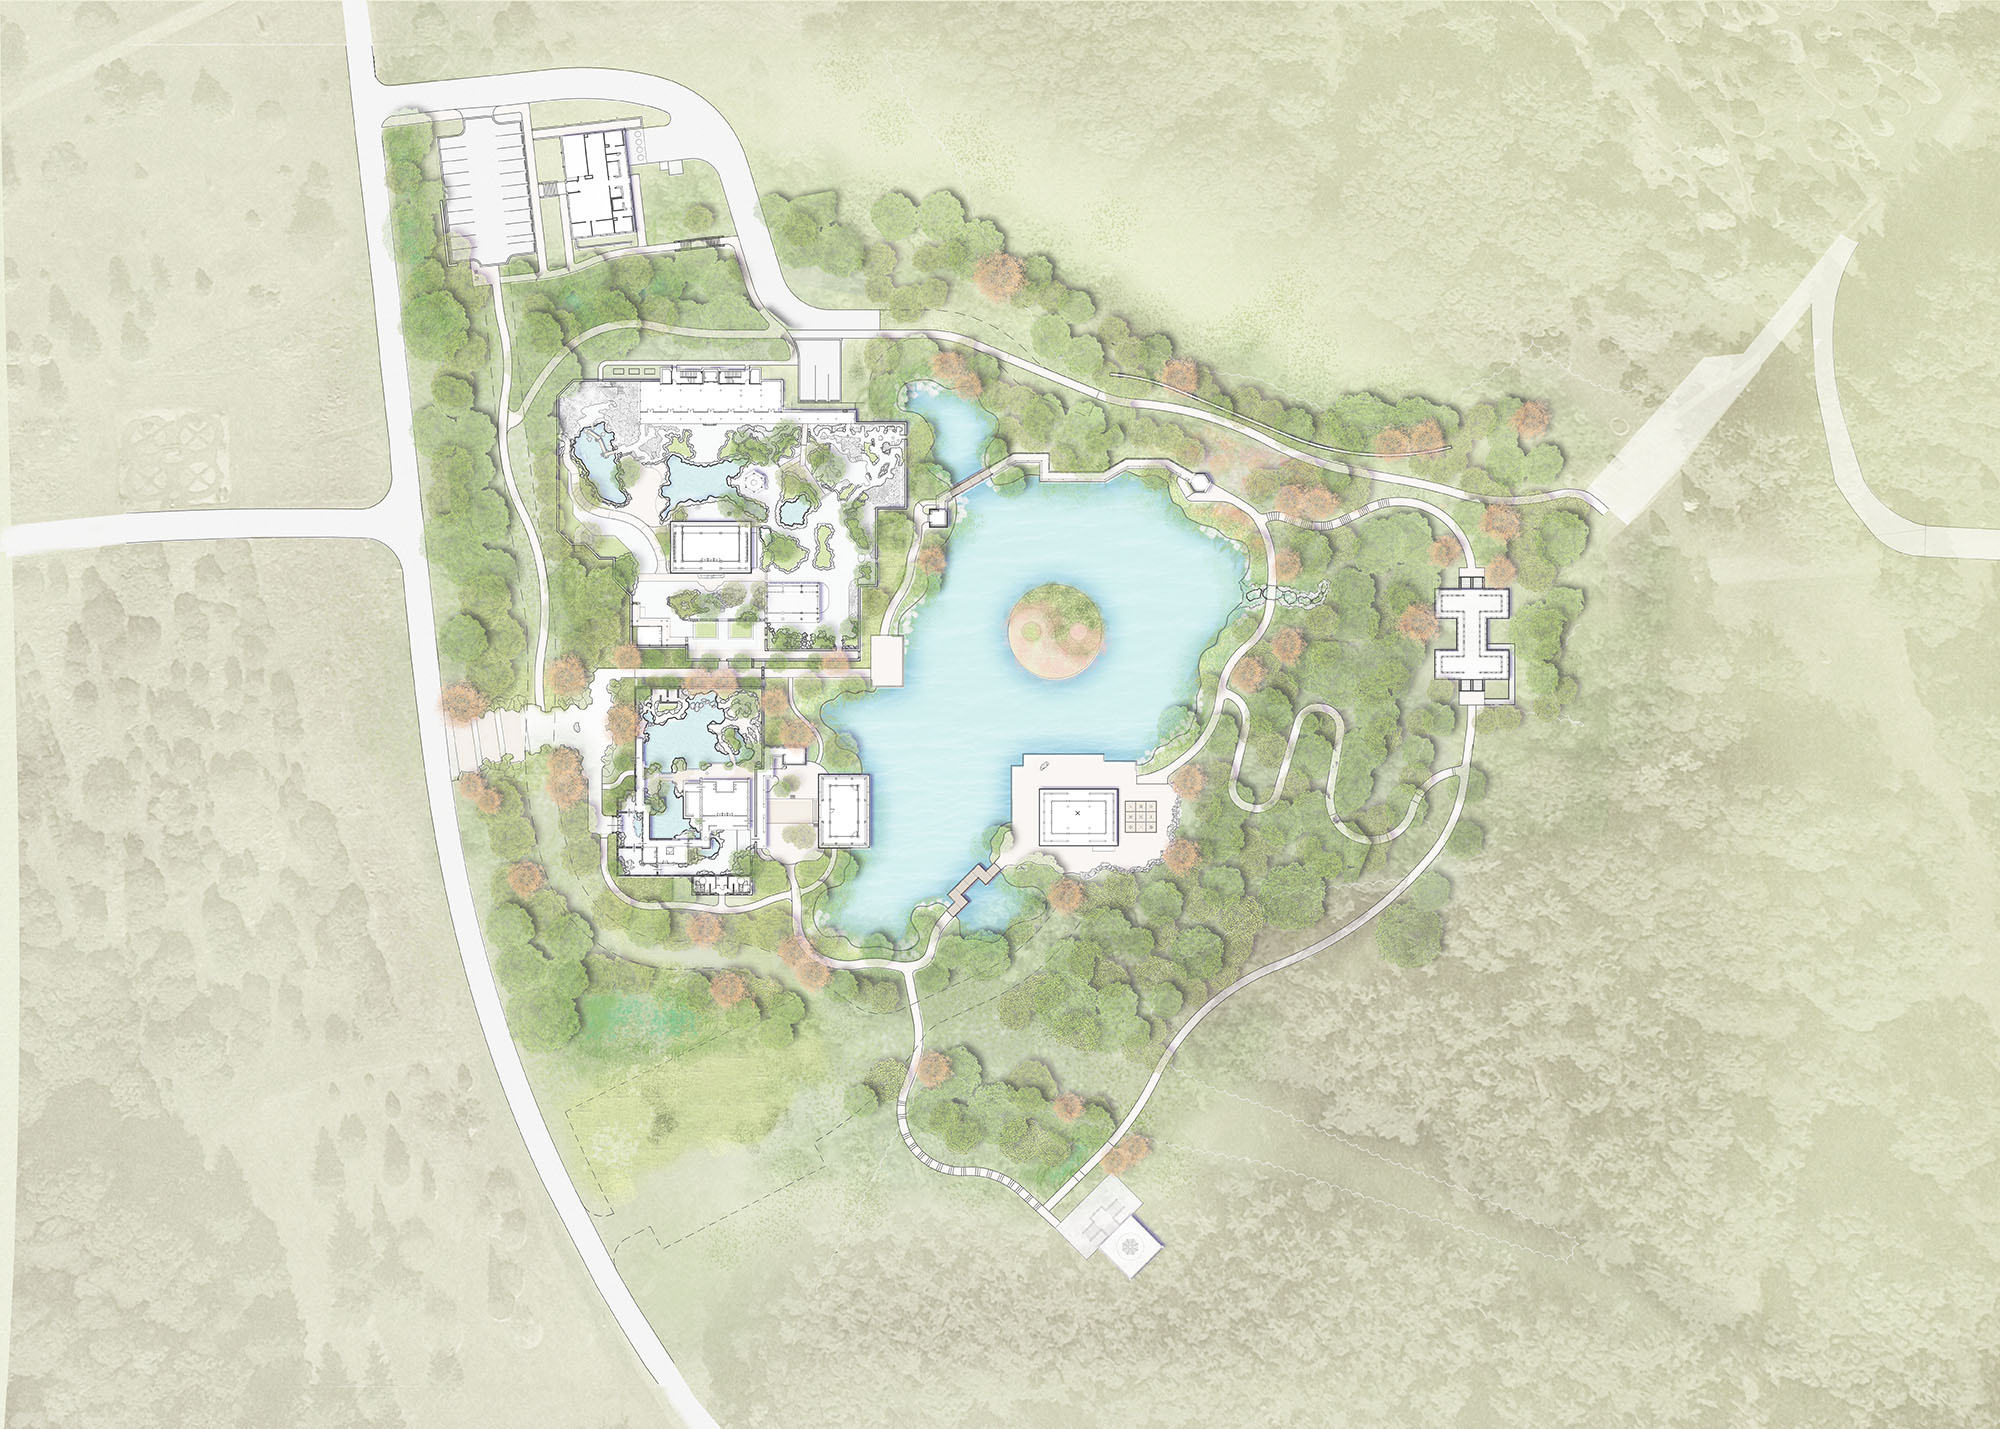 P:National China Garden - LA 38172ProjectCurrent DrawingsCAD